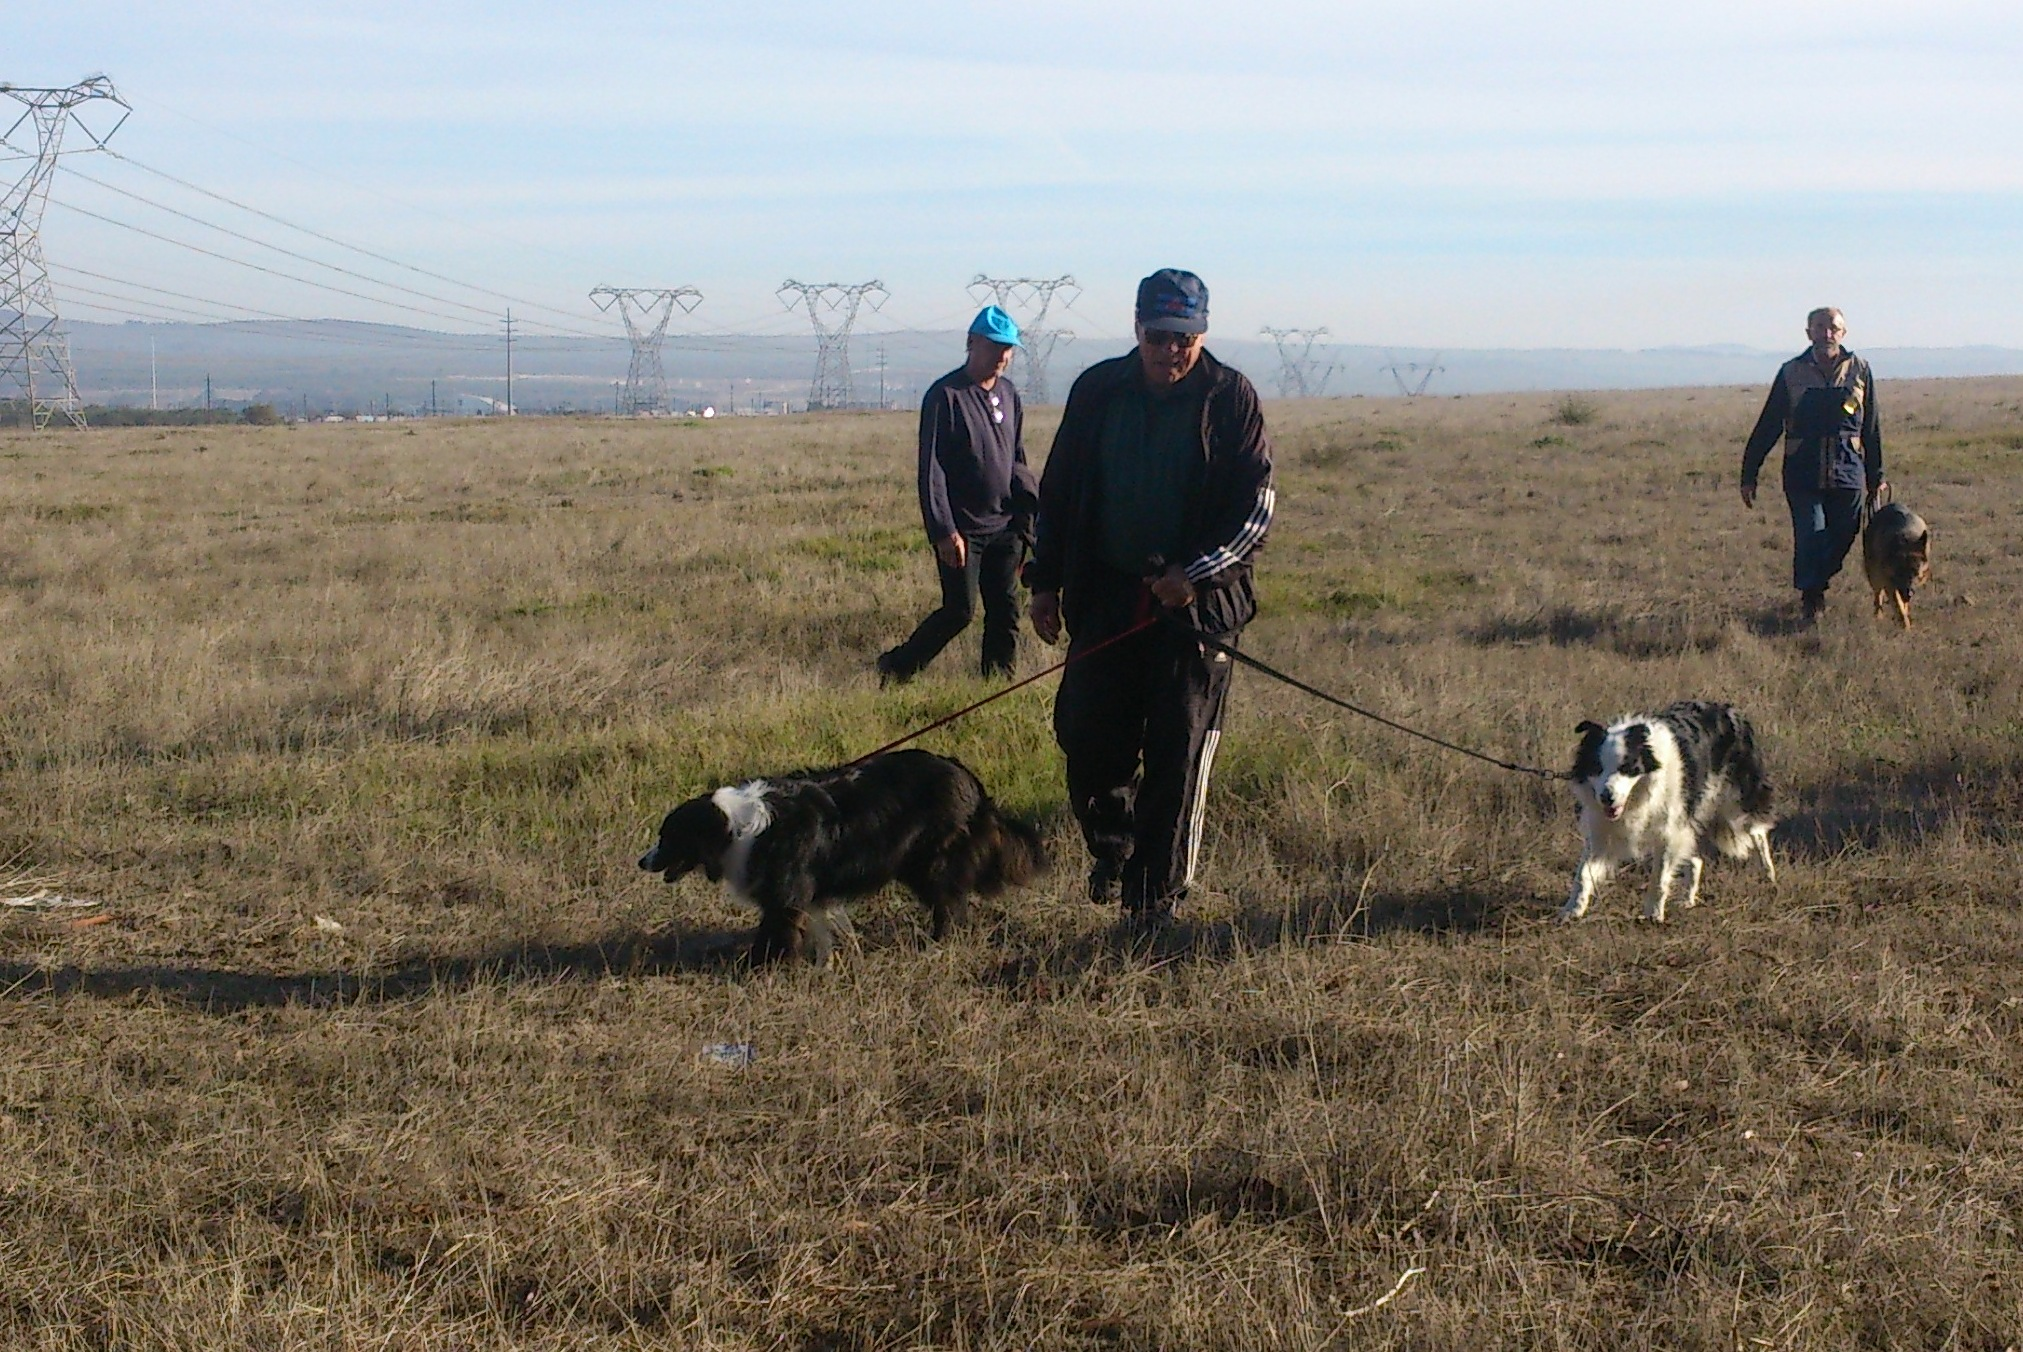 Peggy-Sue, Louis and Siobhan - Peggy SUe Qualified in Companion Dog